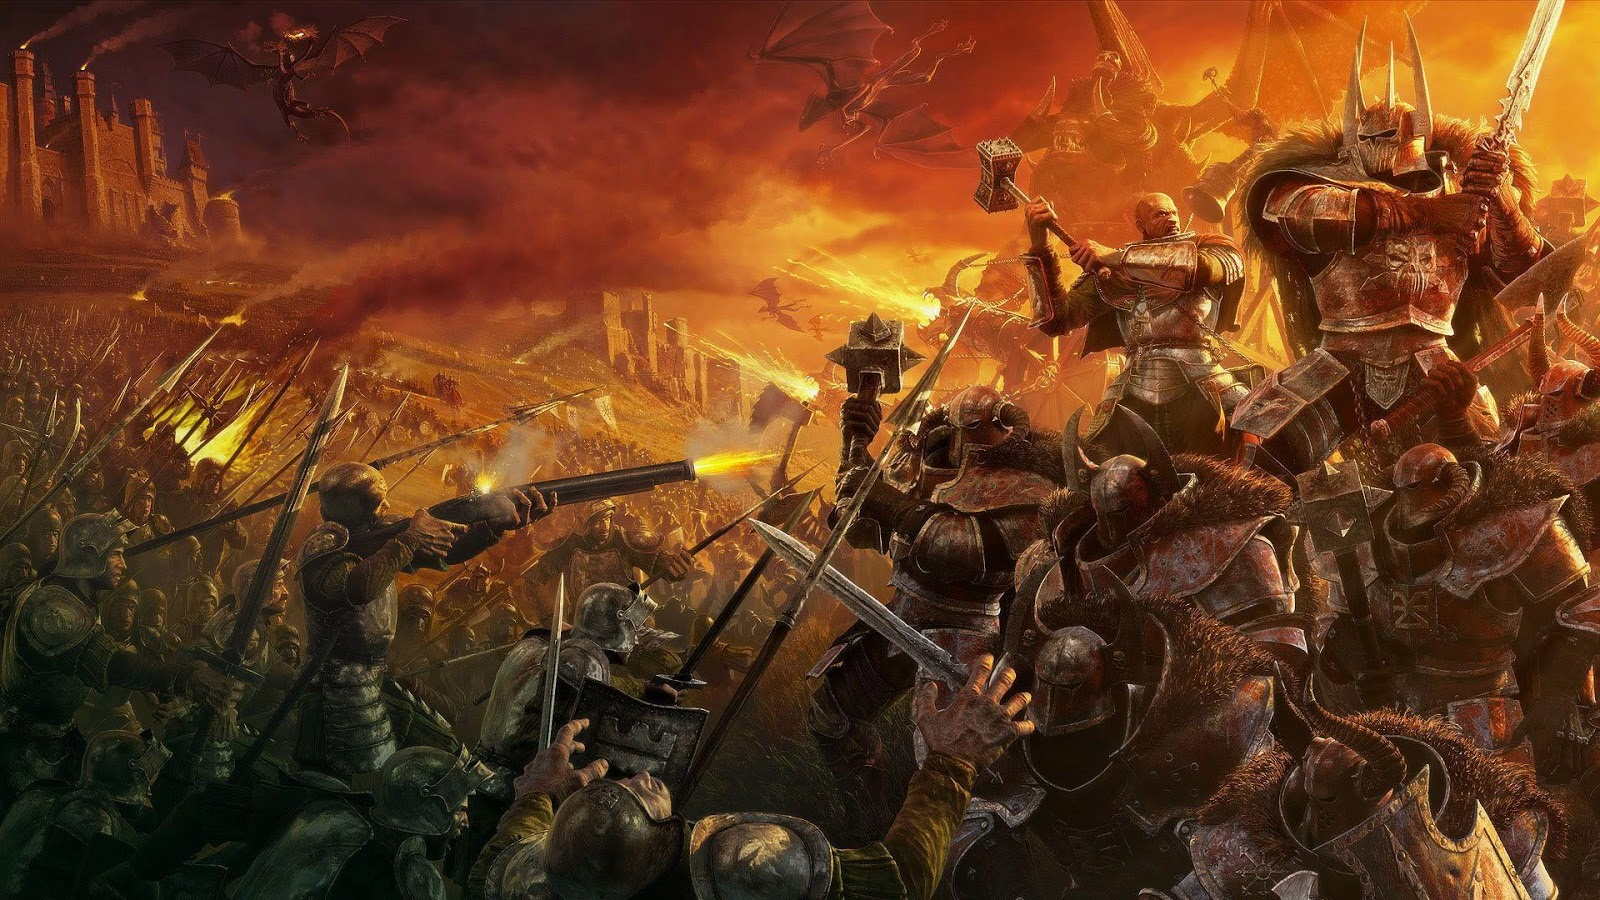 Age Of Empires Wallpapers The Best Place To Enjoy Your Lovely Desktop